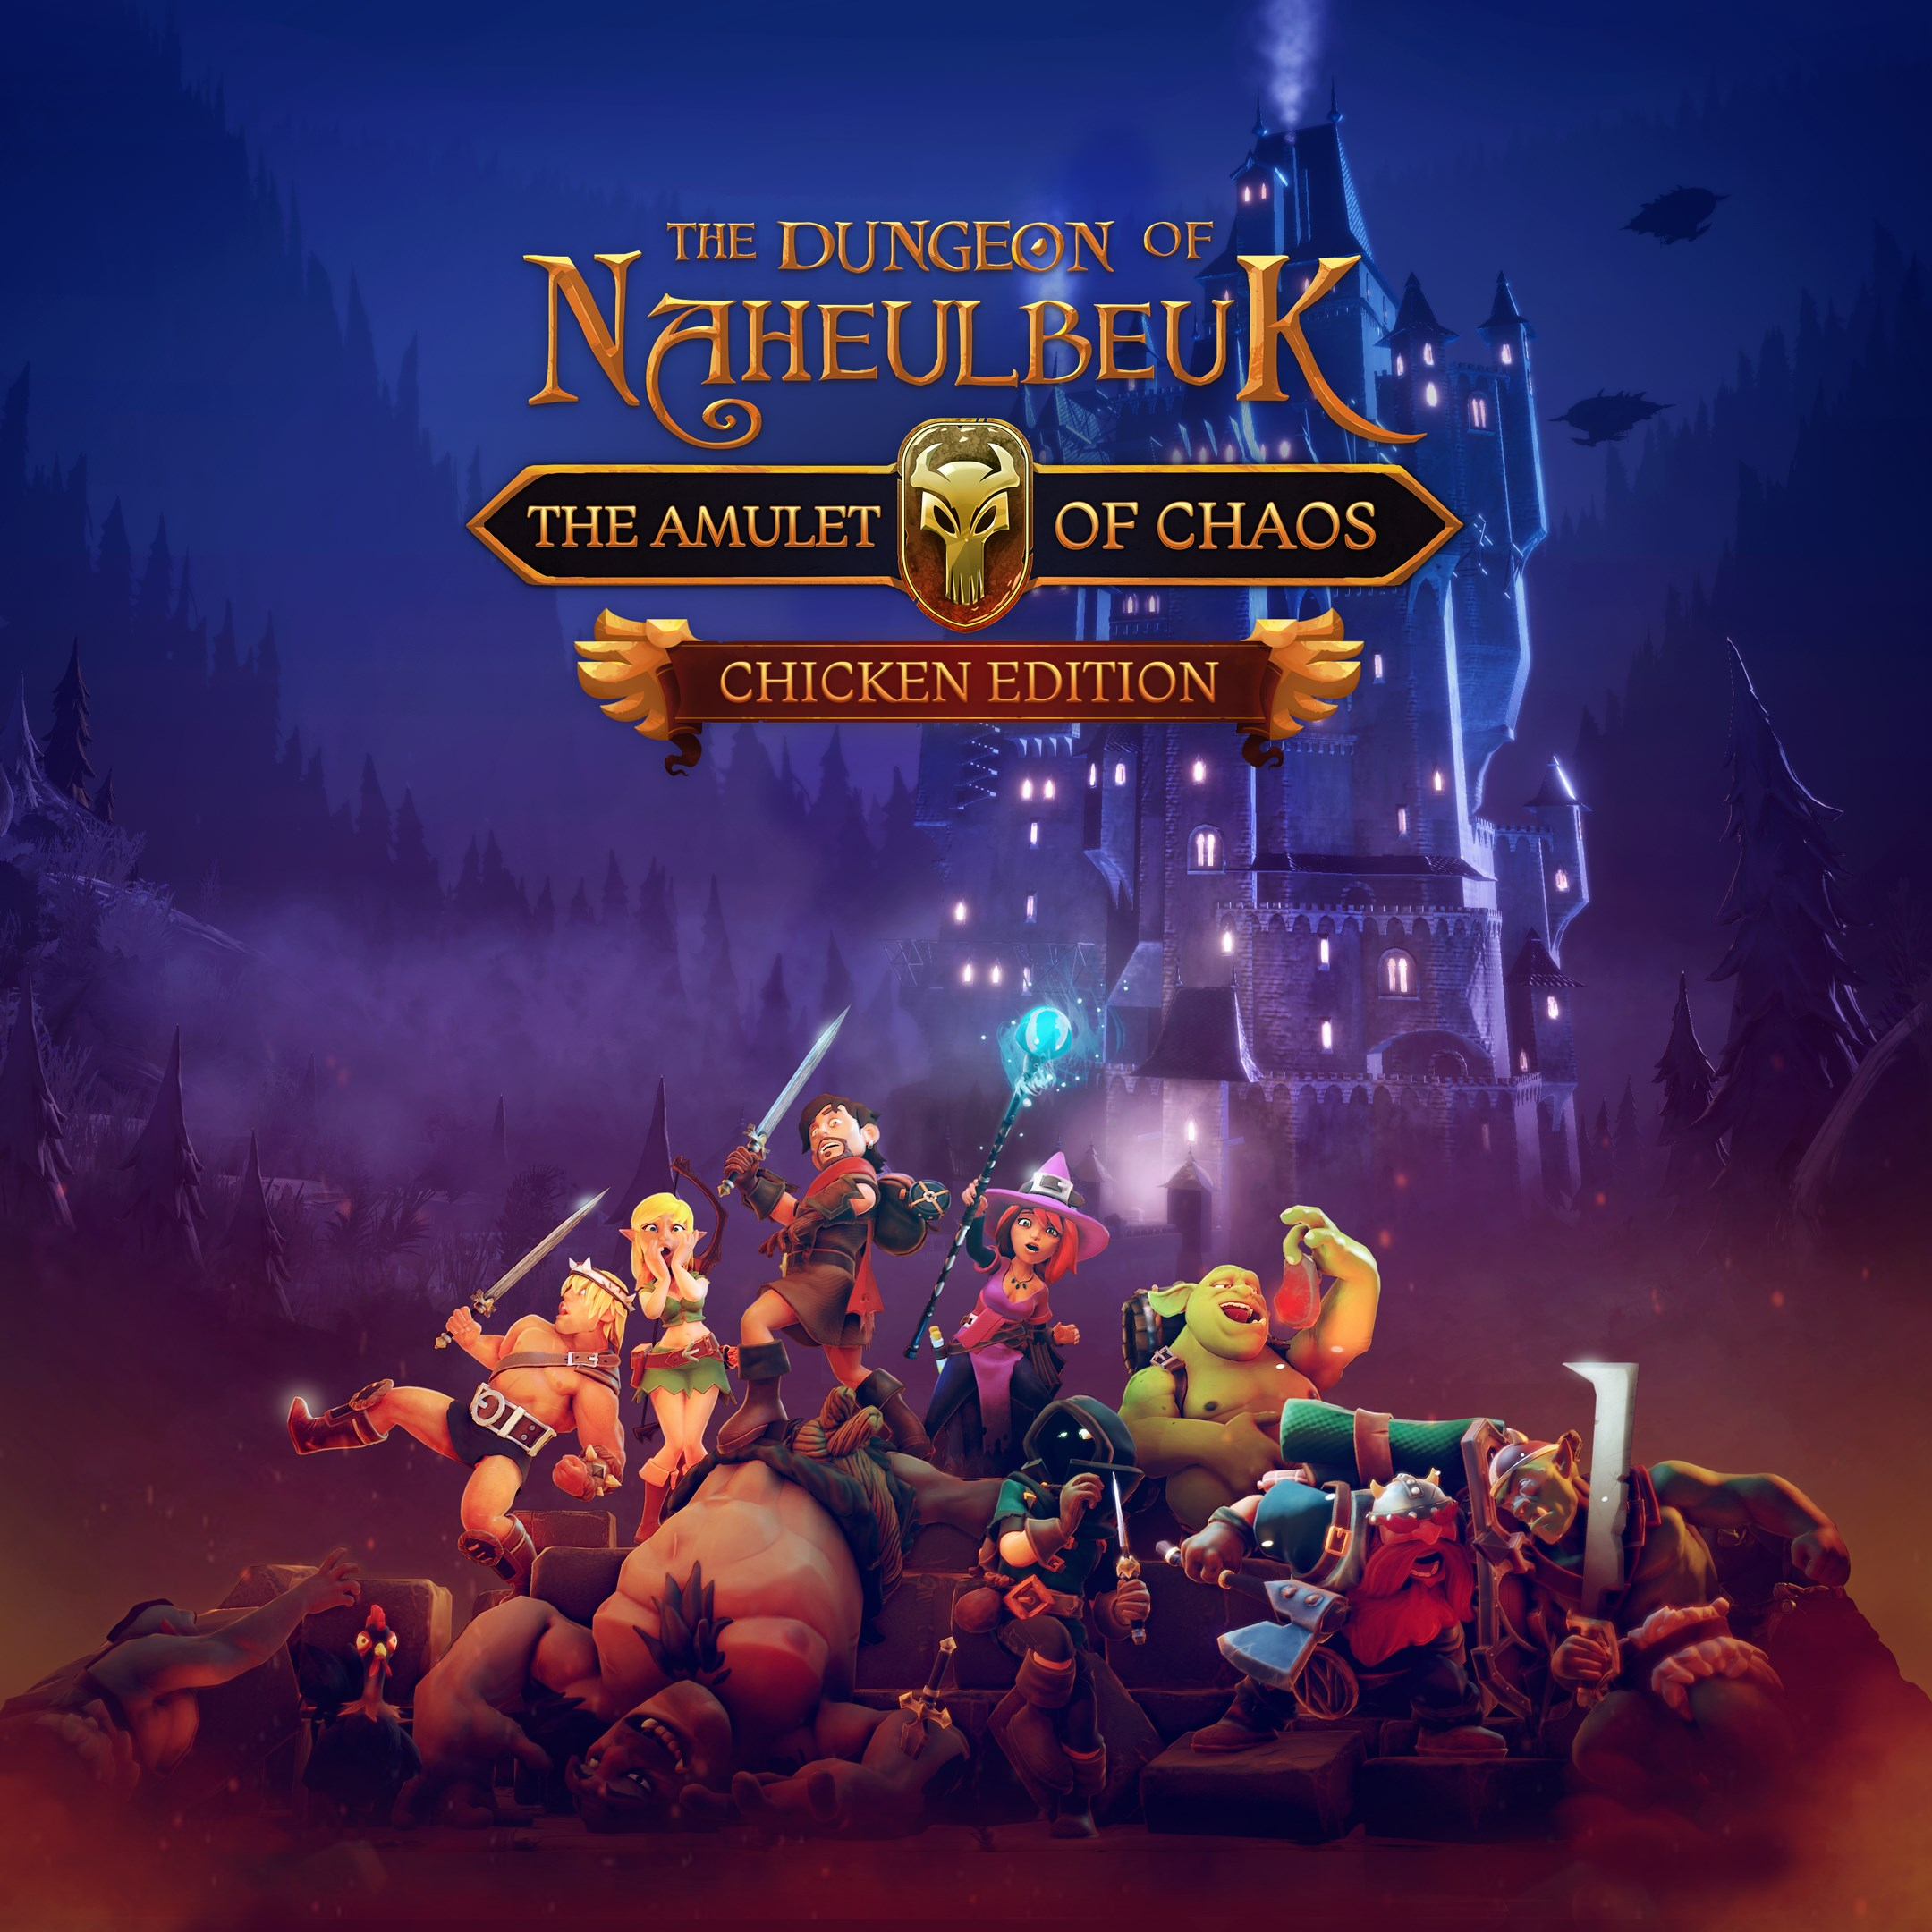 Image for The Dungeon Of Naheulbeuk: The Amulet Of Chaos - Chicken Edition